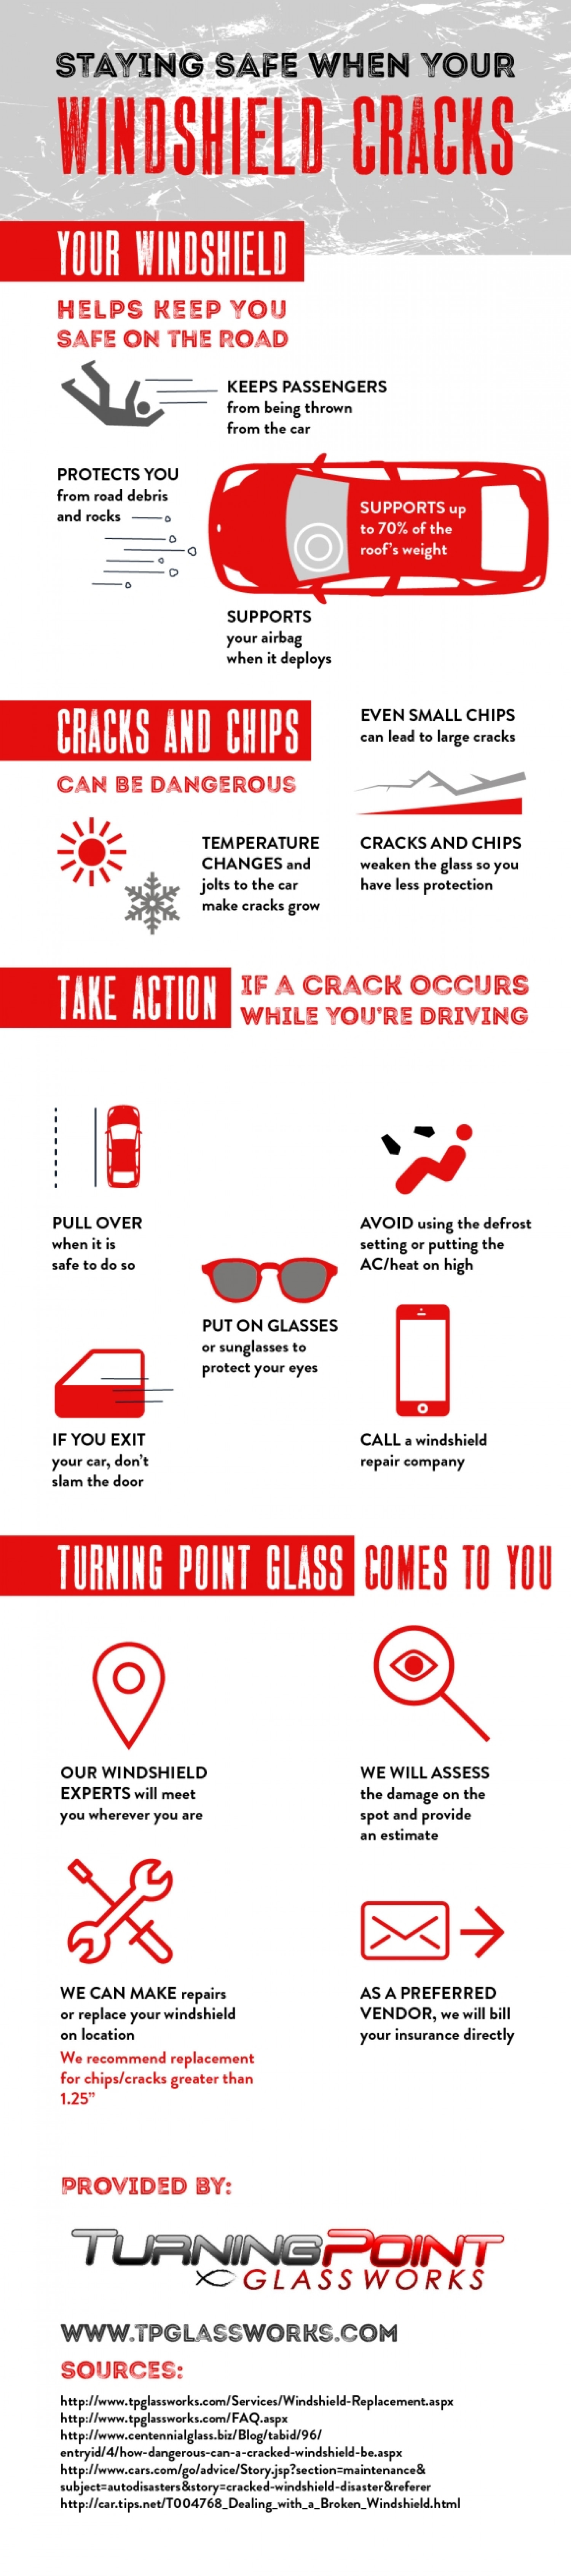 Staying Safe When Your Windshield Cracks Infographic